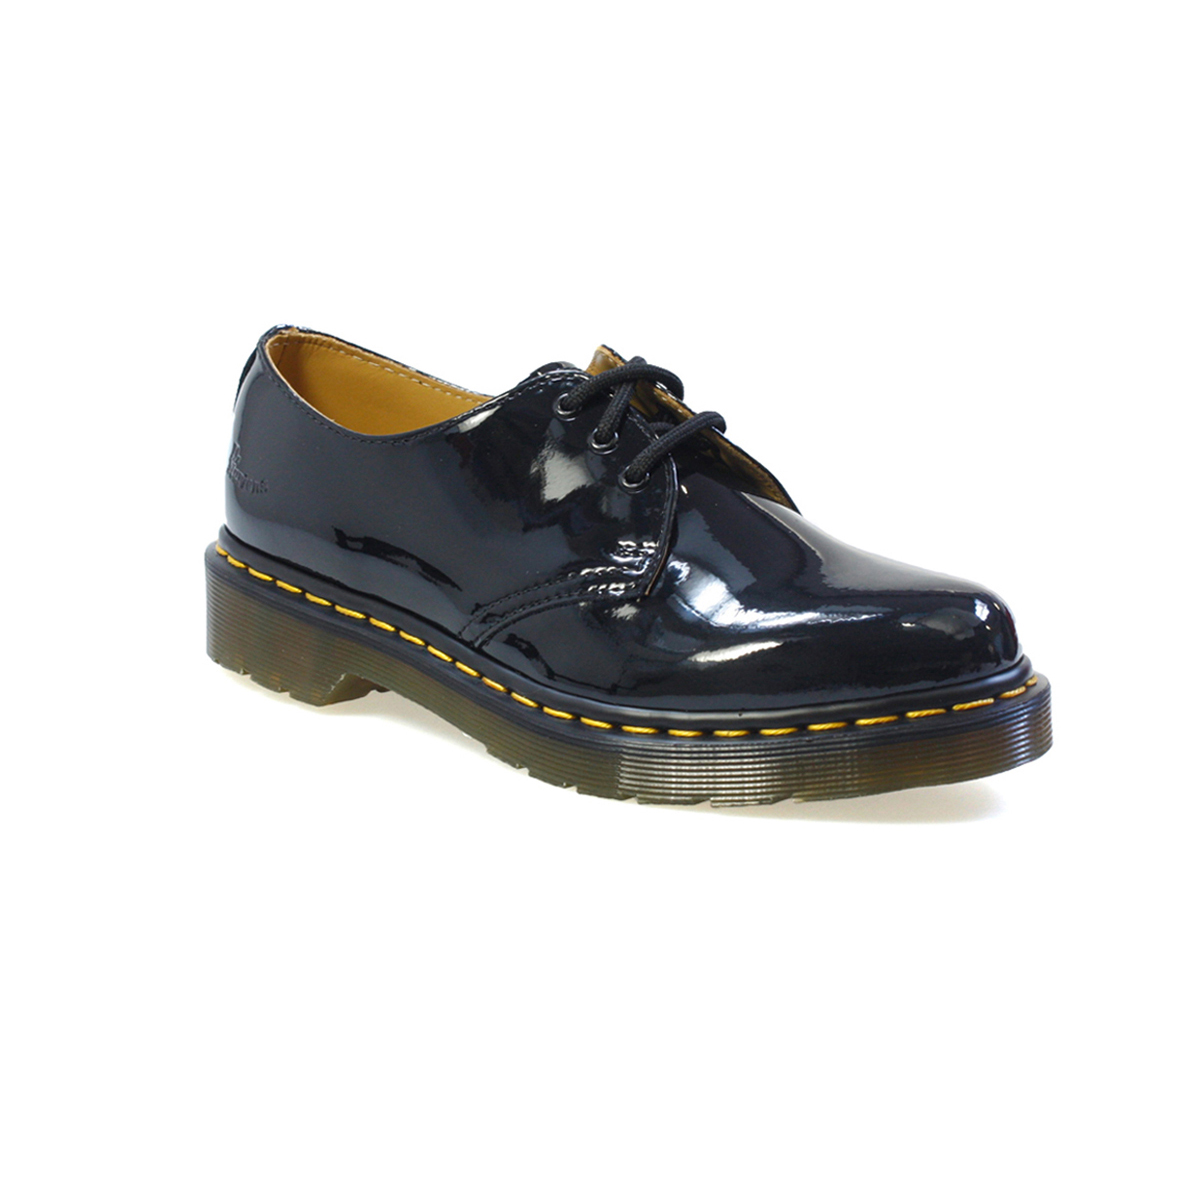 Dr Martens Shoes 2015